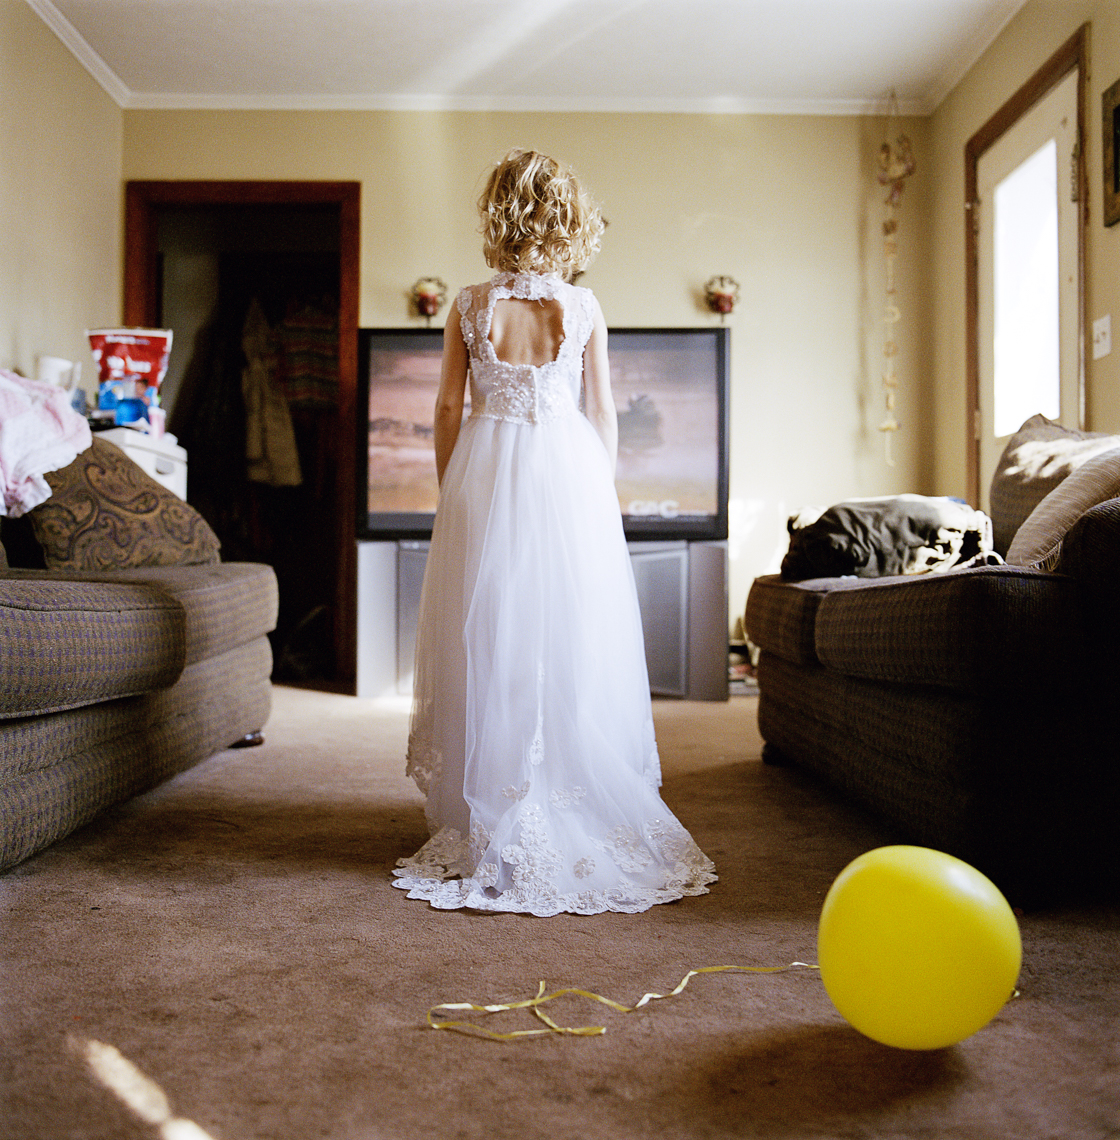 Young girl in a white gown with a yellow balloon watching country music videos in her living room, woman, owned, business, women in photography